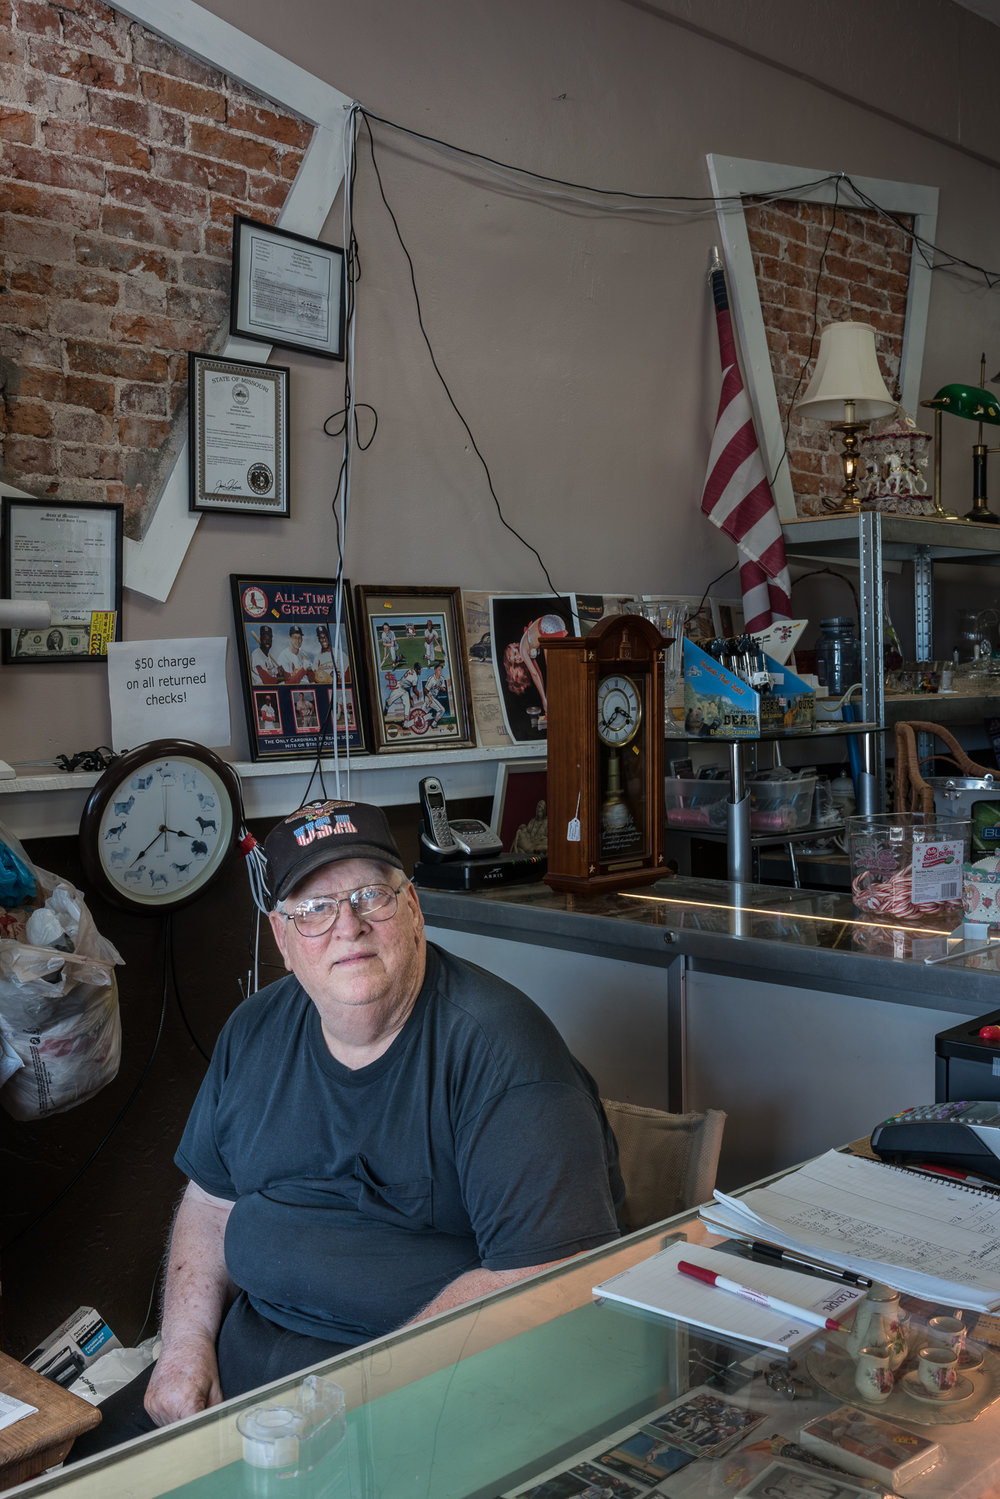 Mike at the Resale Shop, De Soto, Missouri, 2017